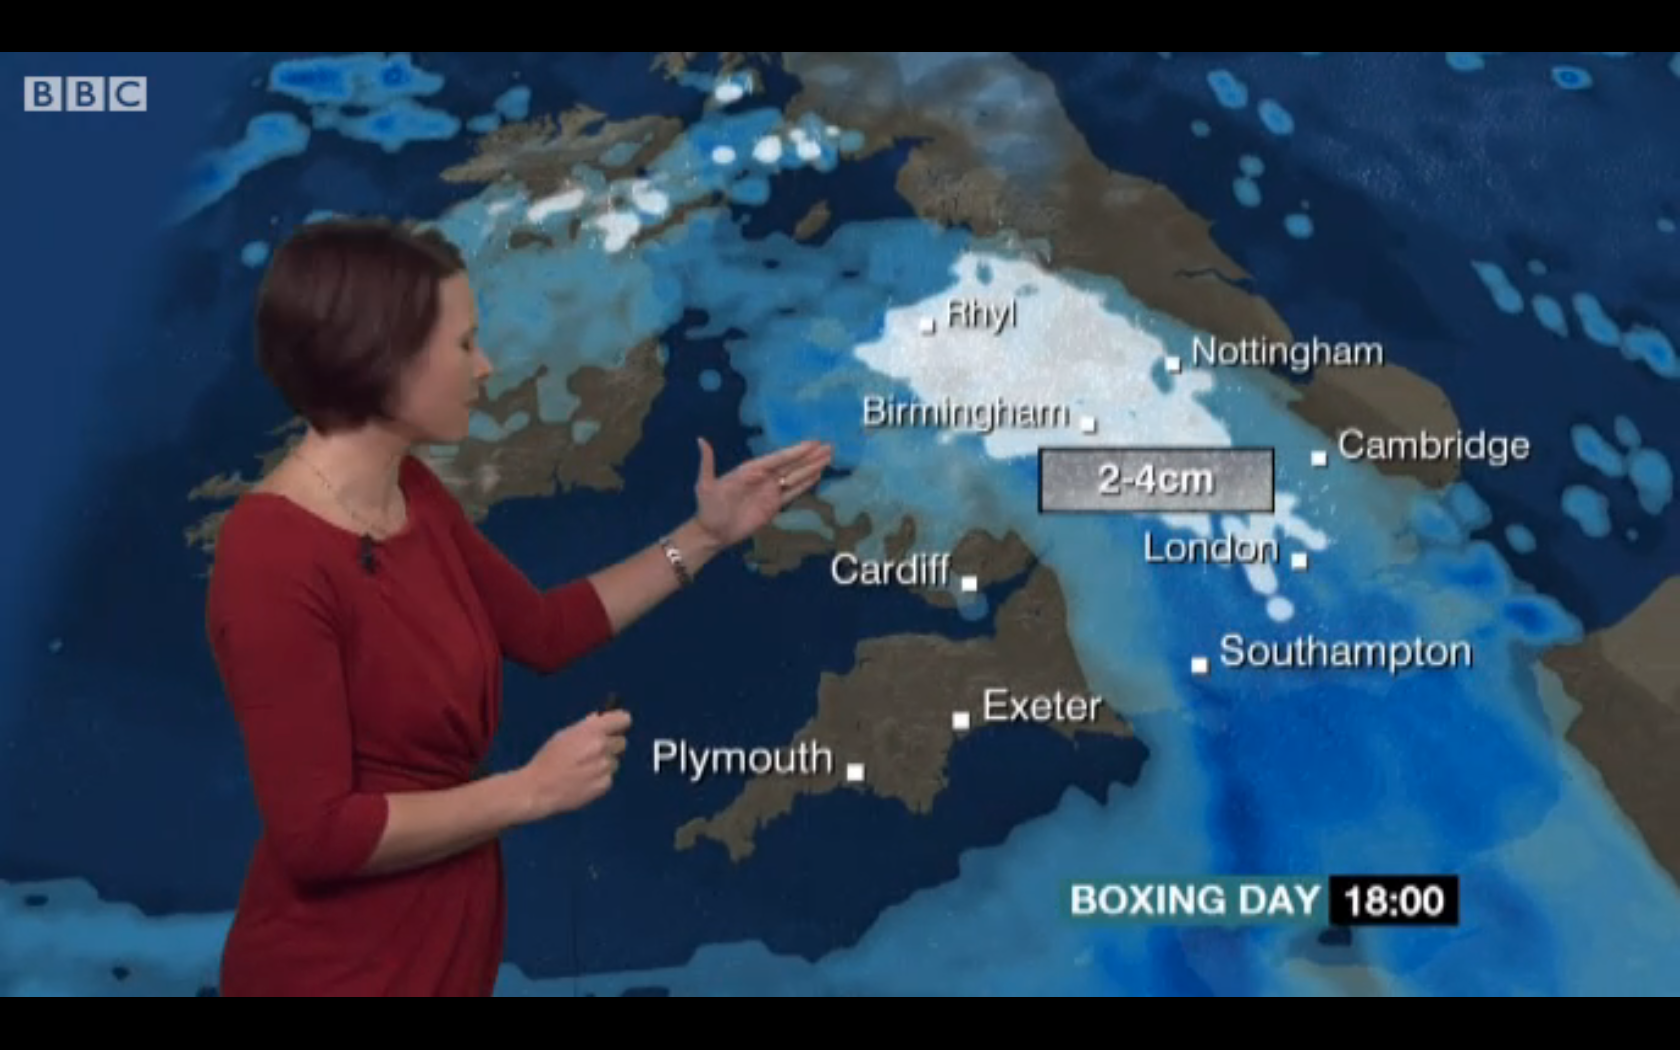 Bbc weather - Bbc Weather Showing The Snow